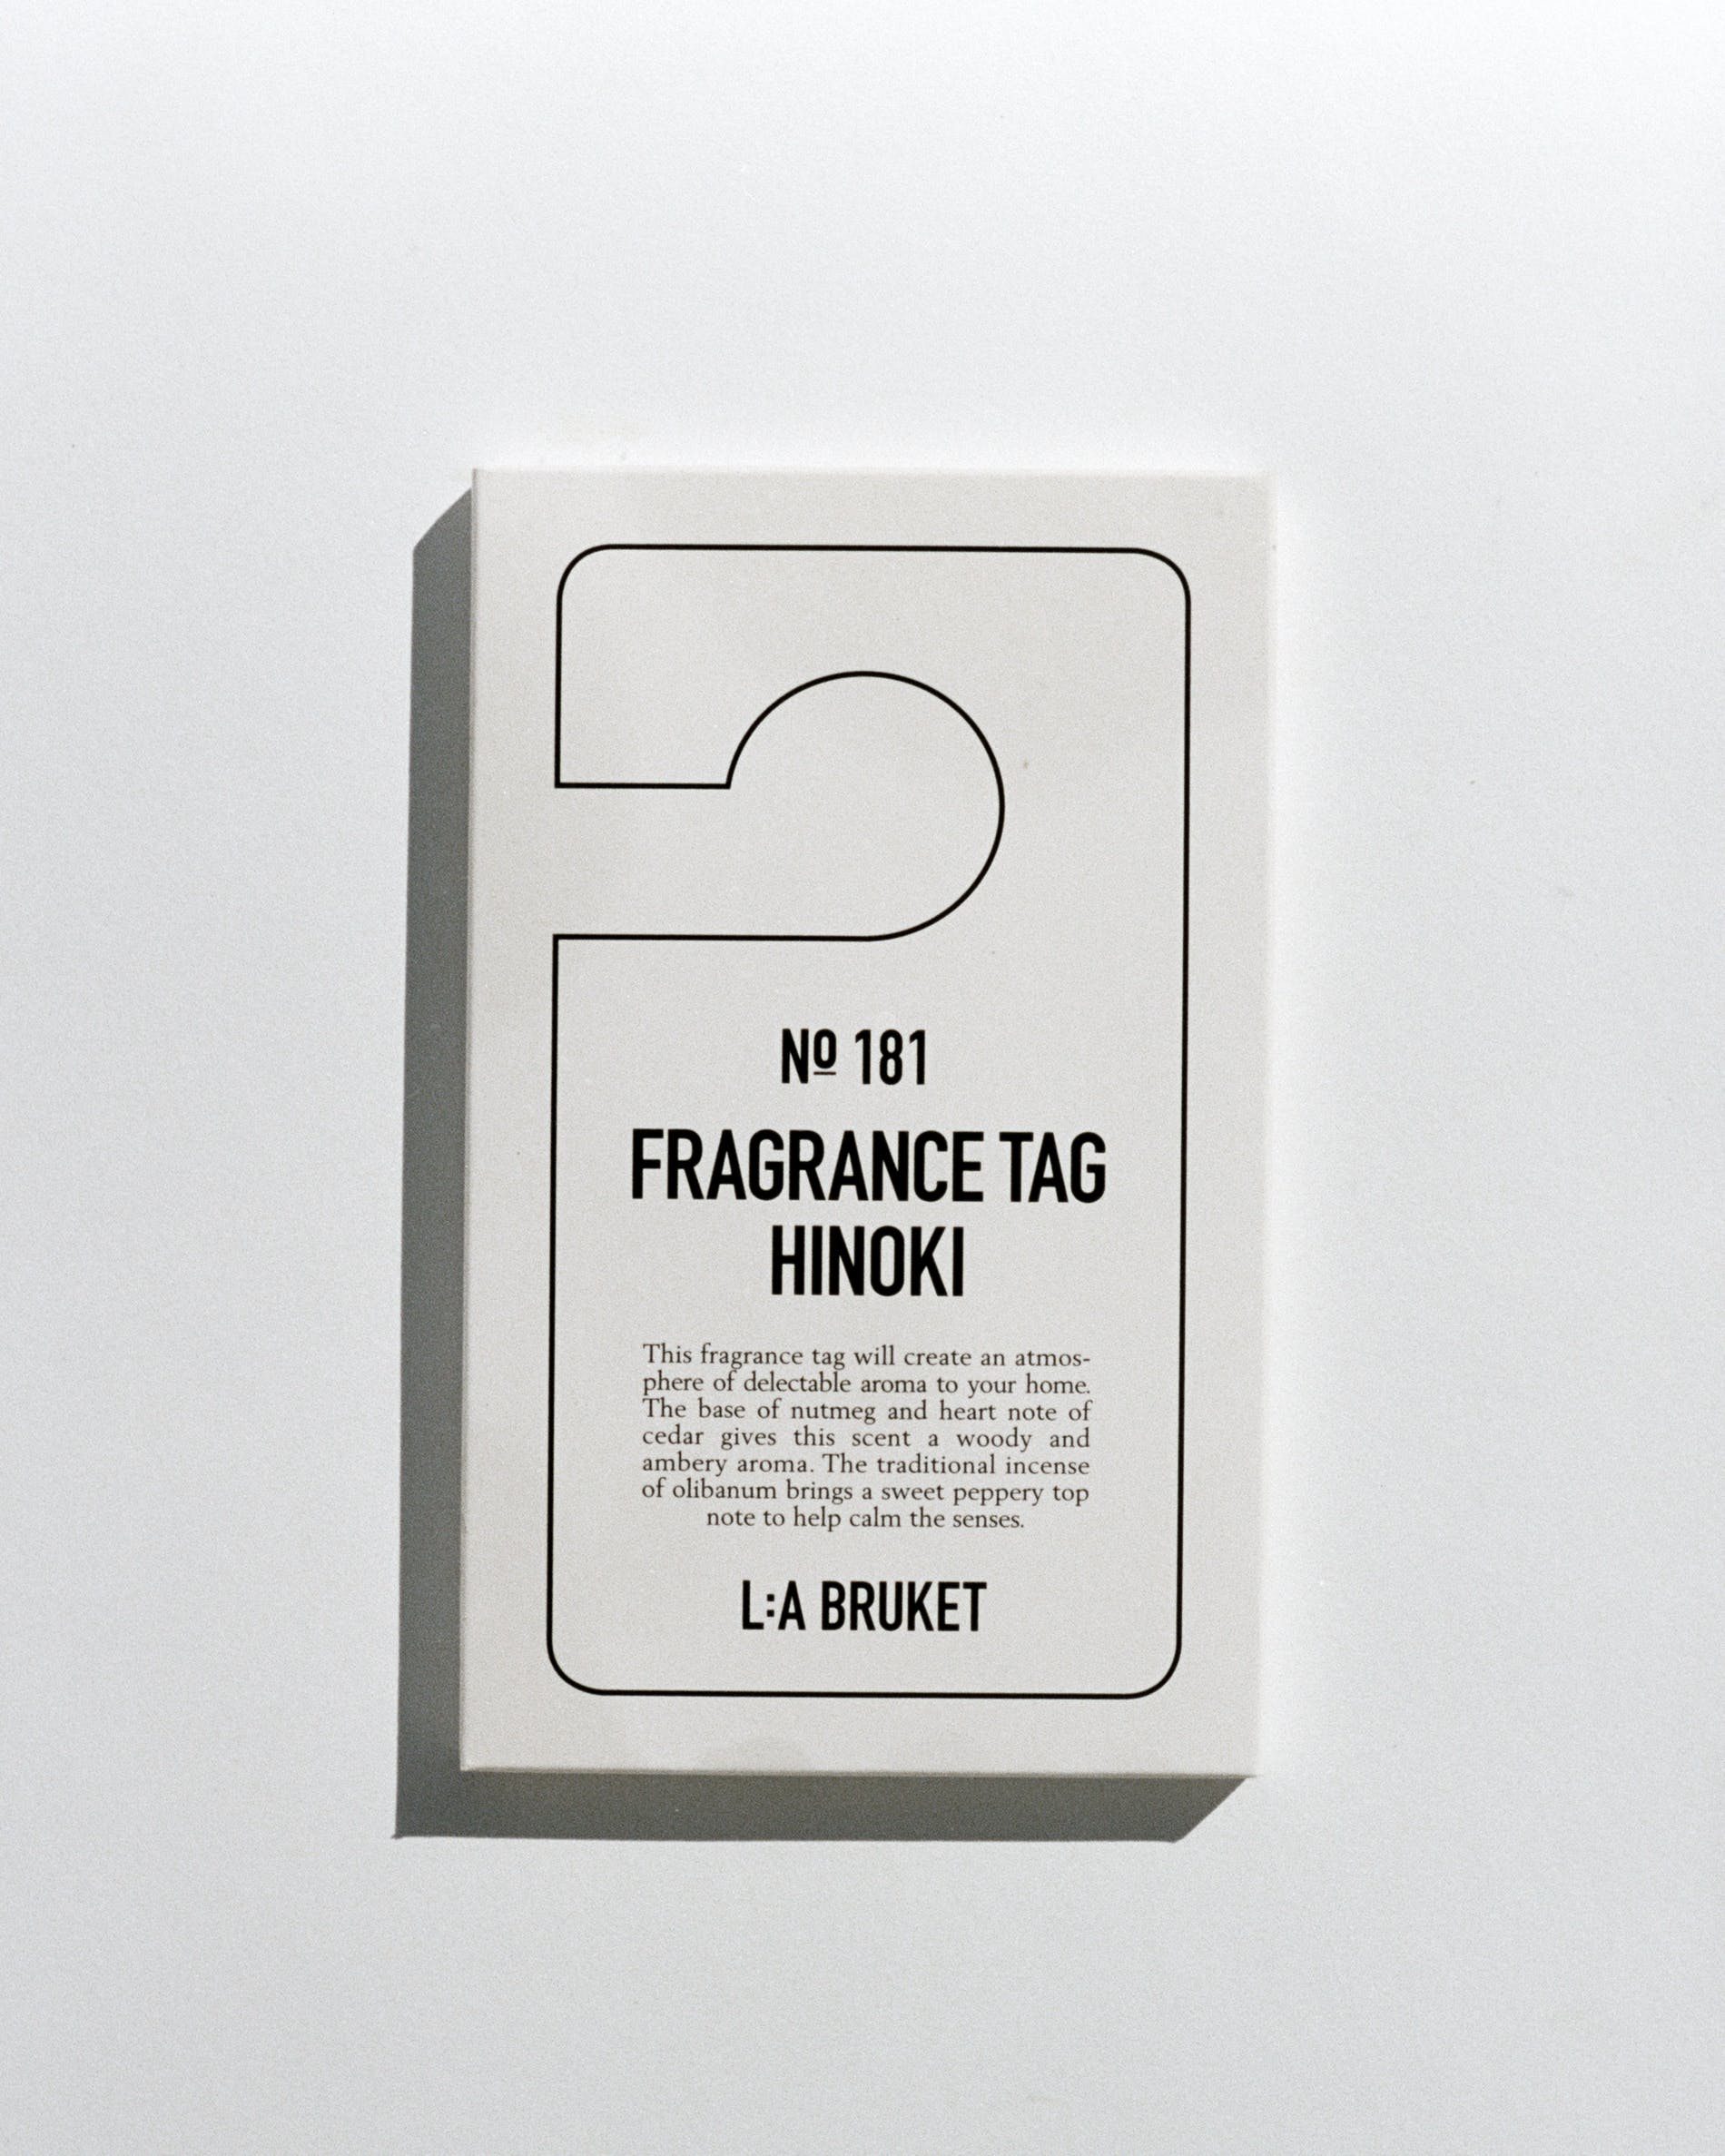 Fragrance tag